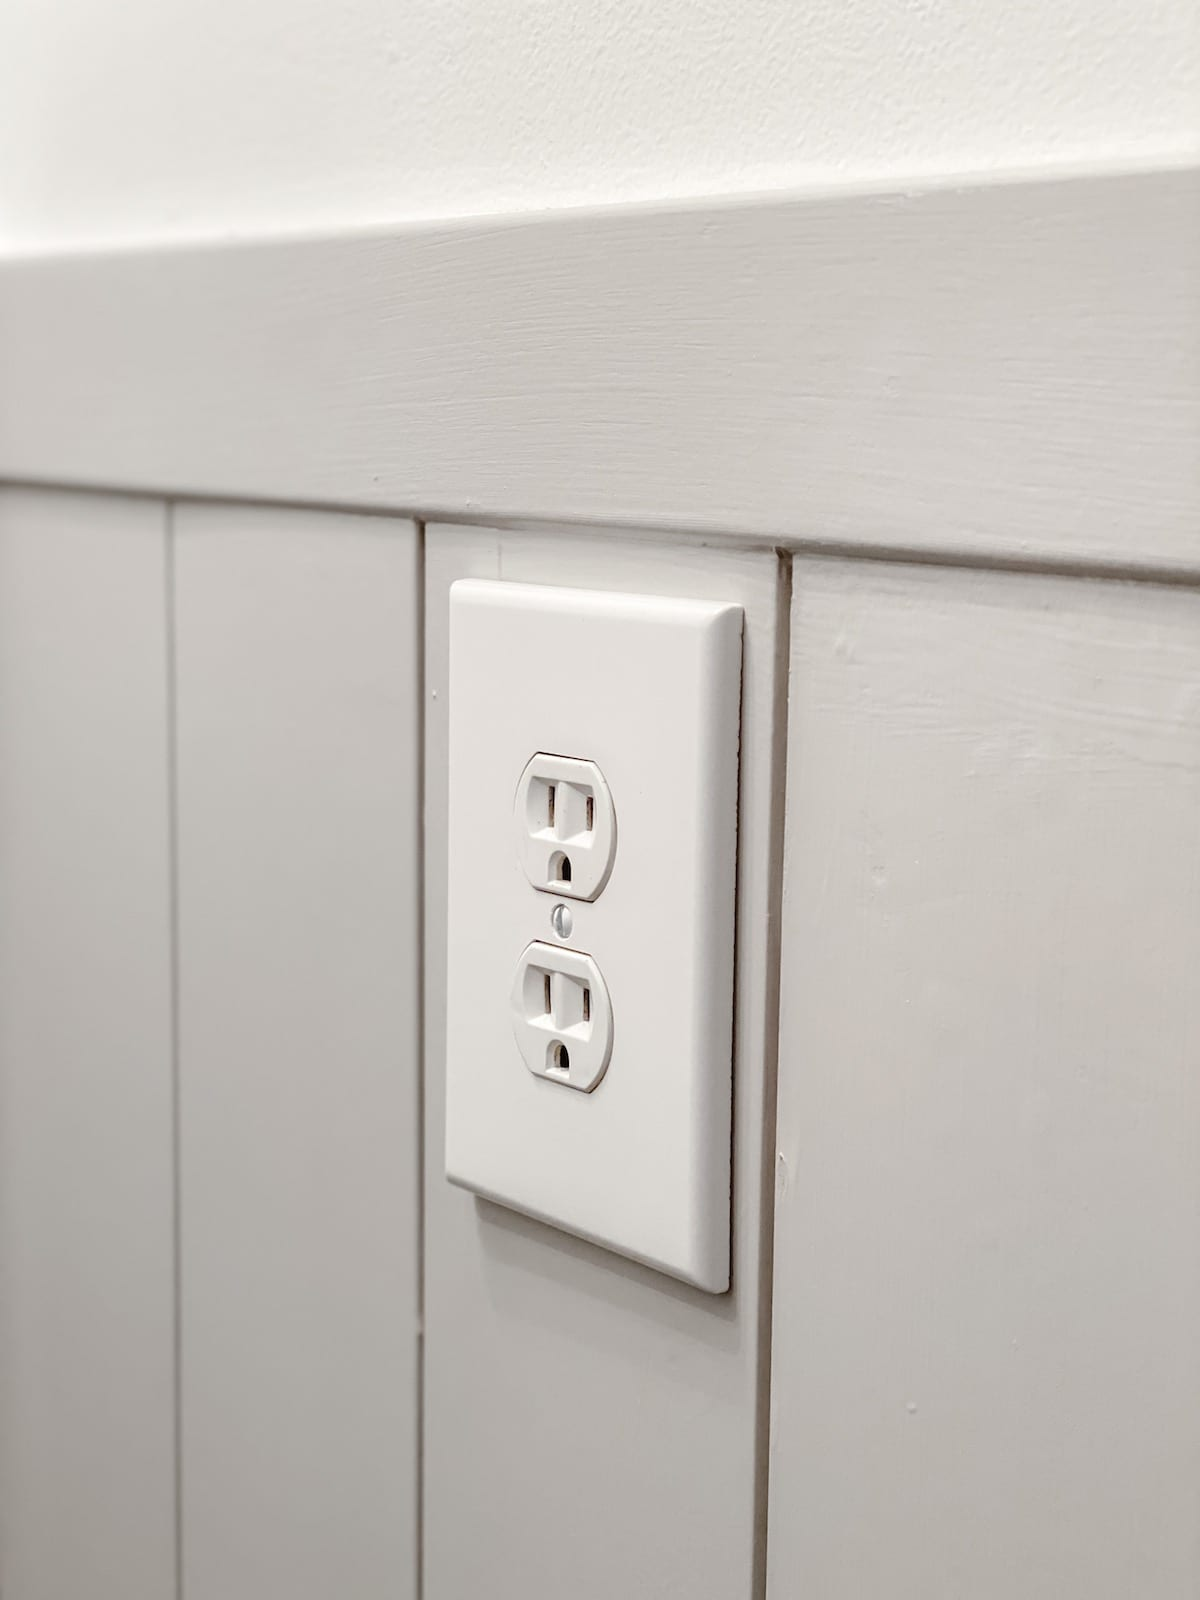 outlet spacers to push out outlet flush with shiplap